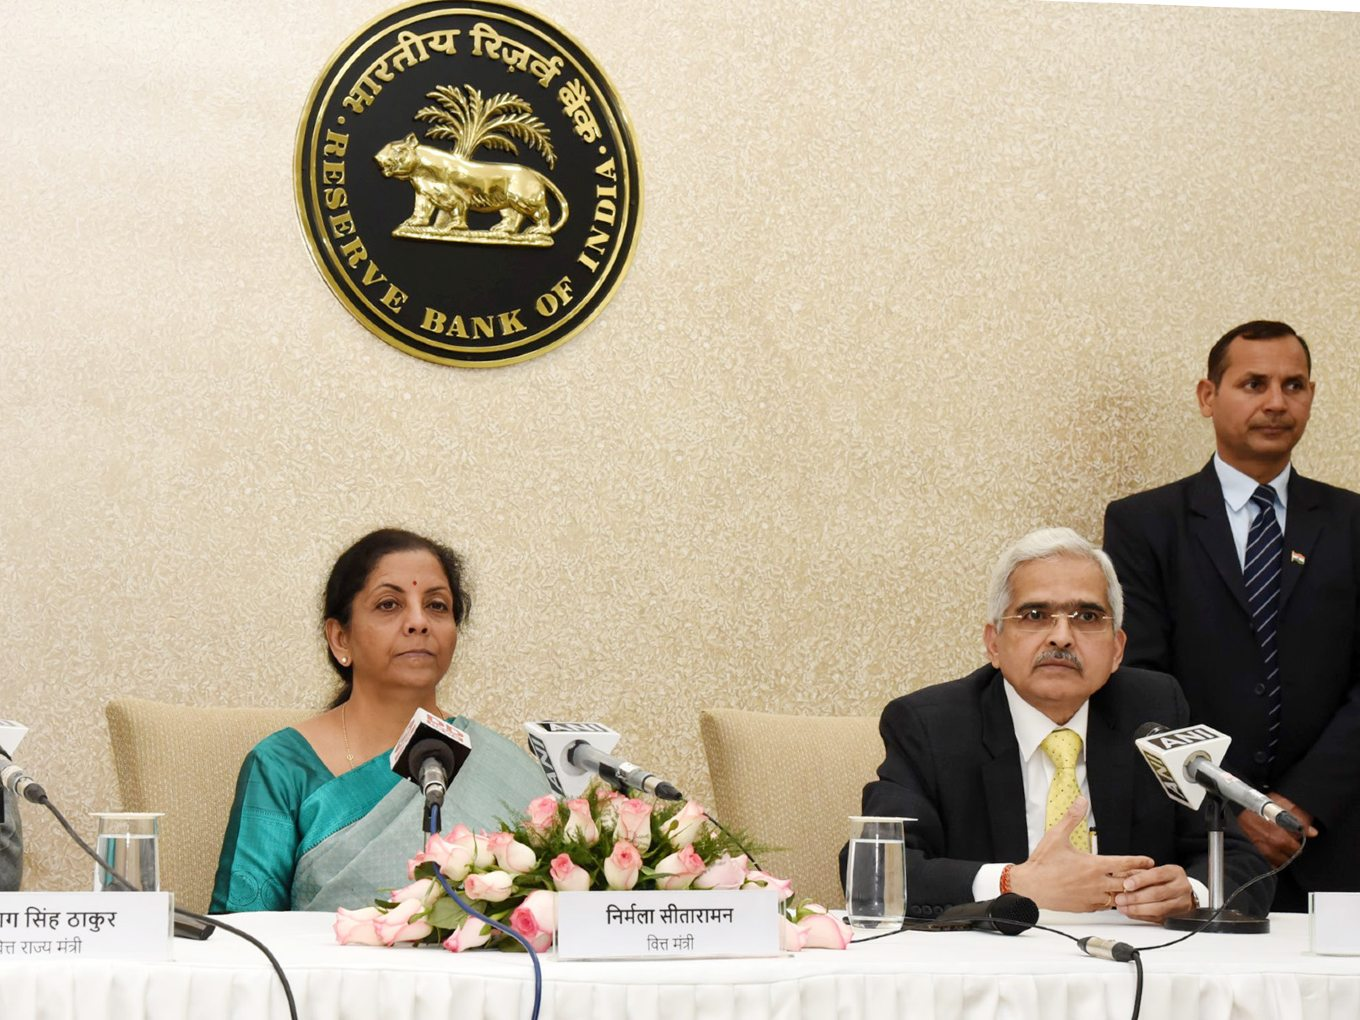 1% TCS On Foreign Remittances: Finance Minister Agrees With Pai